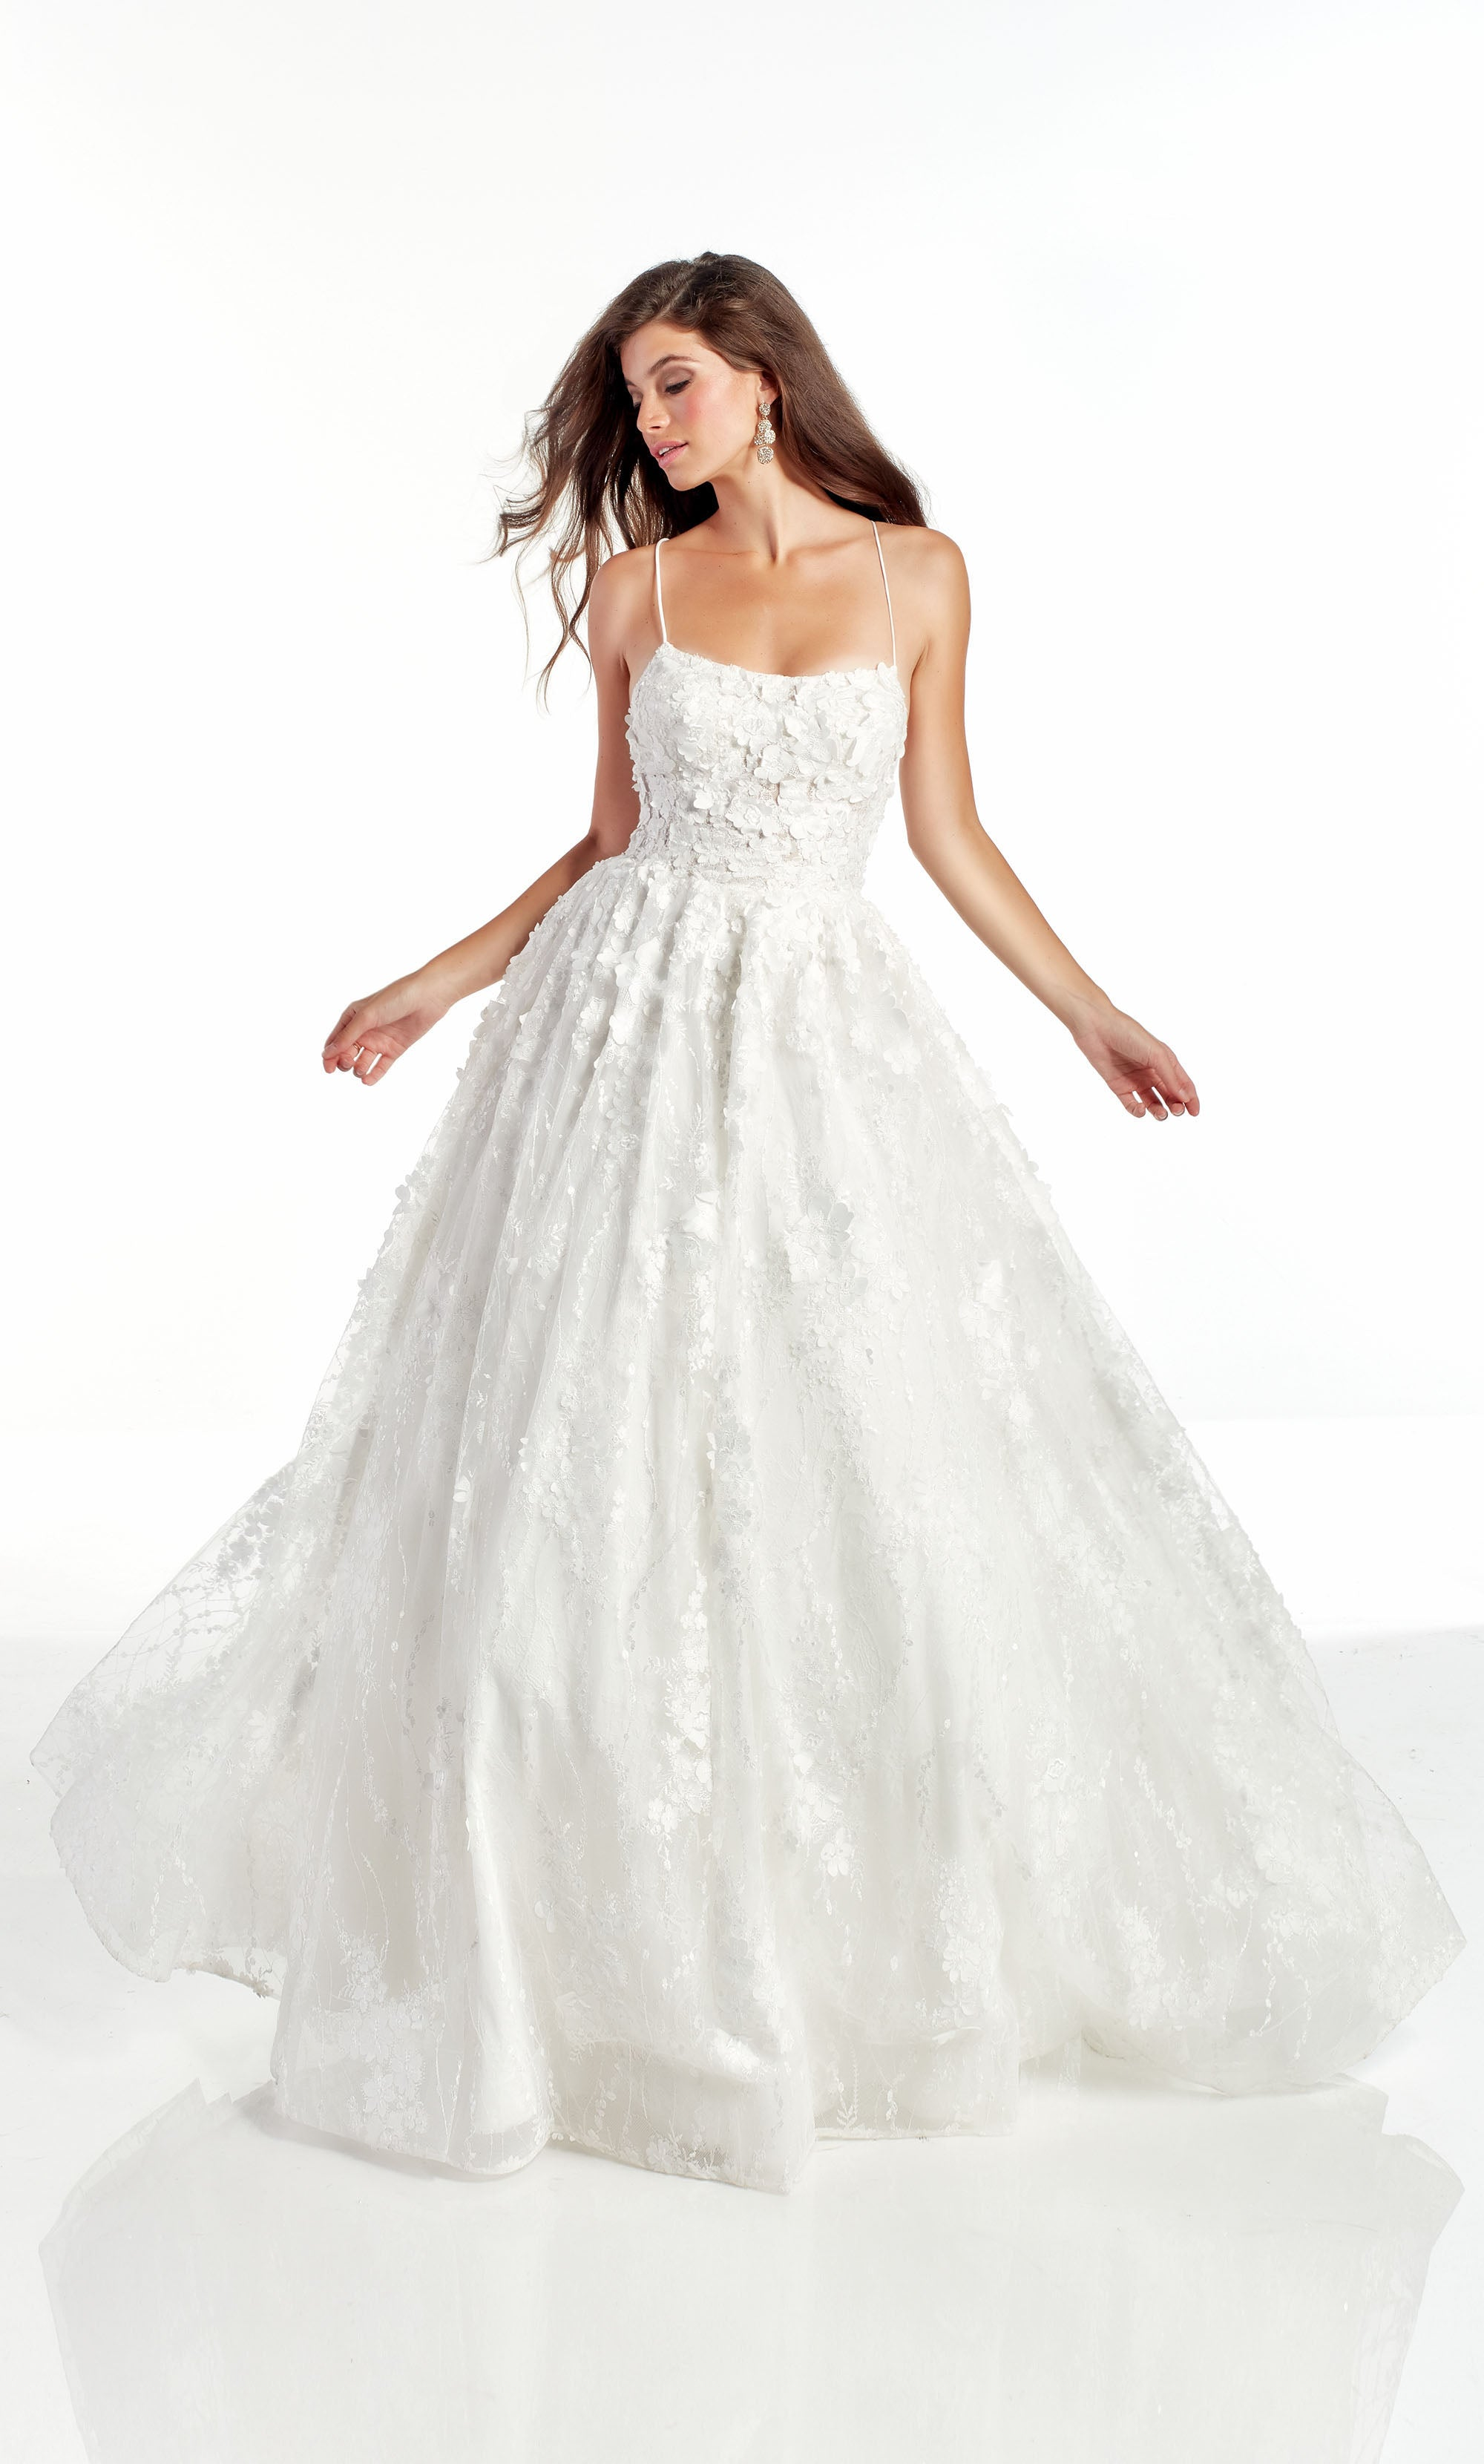 Diamond White 3D lace glitter and stone embellished ballgown with a square neckline